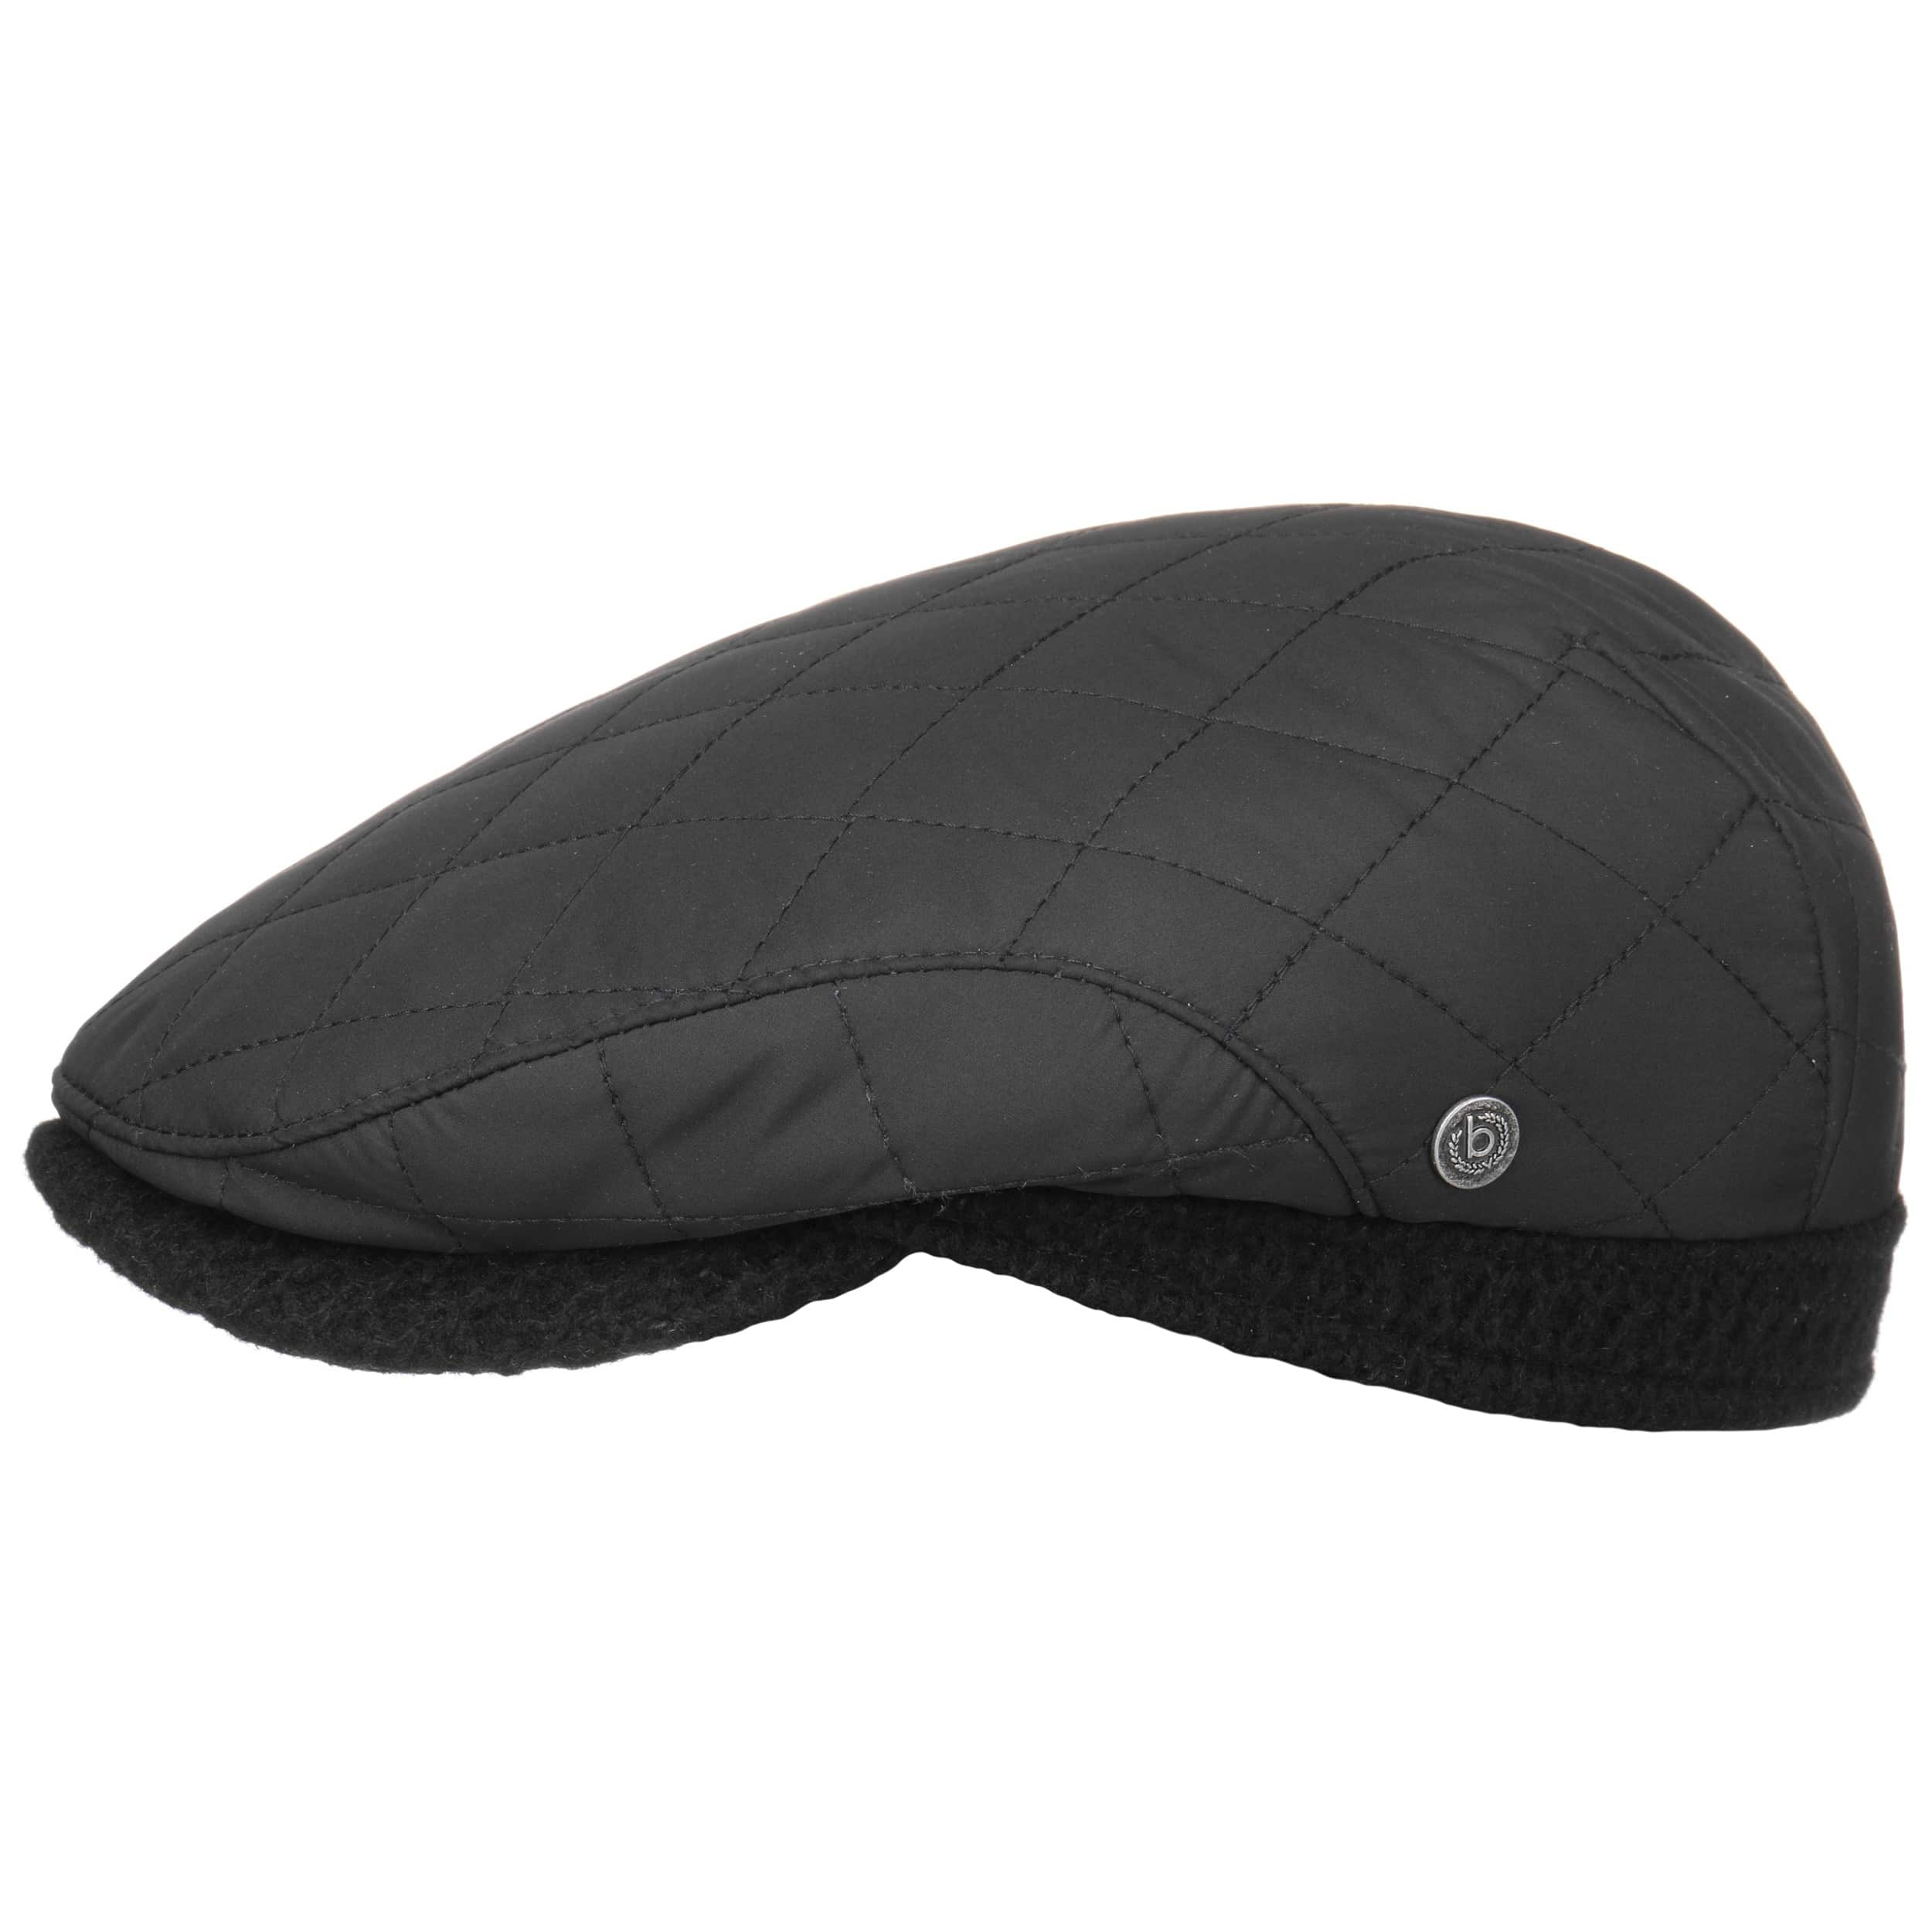 0df456838c3 ... Quilted Flat Cap with Ear Flaps by bugatti - black 6 ...